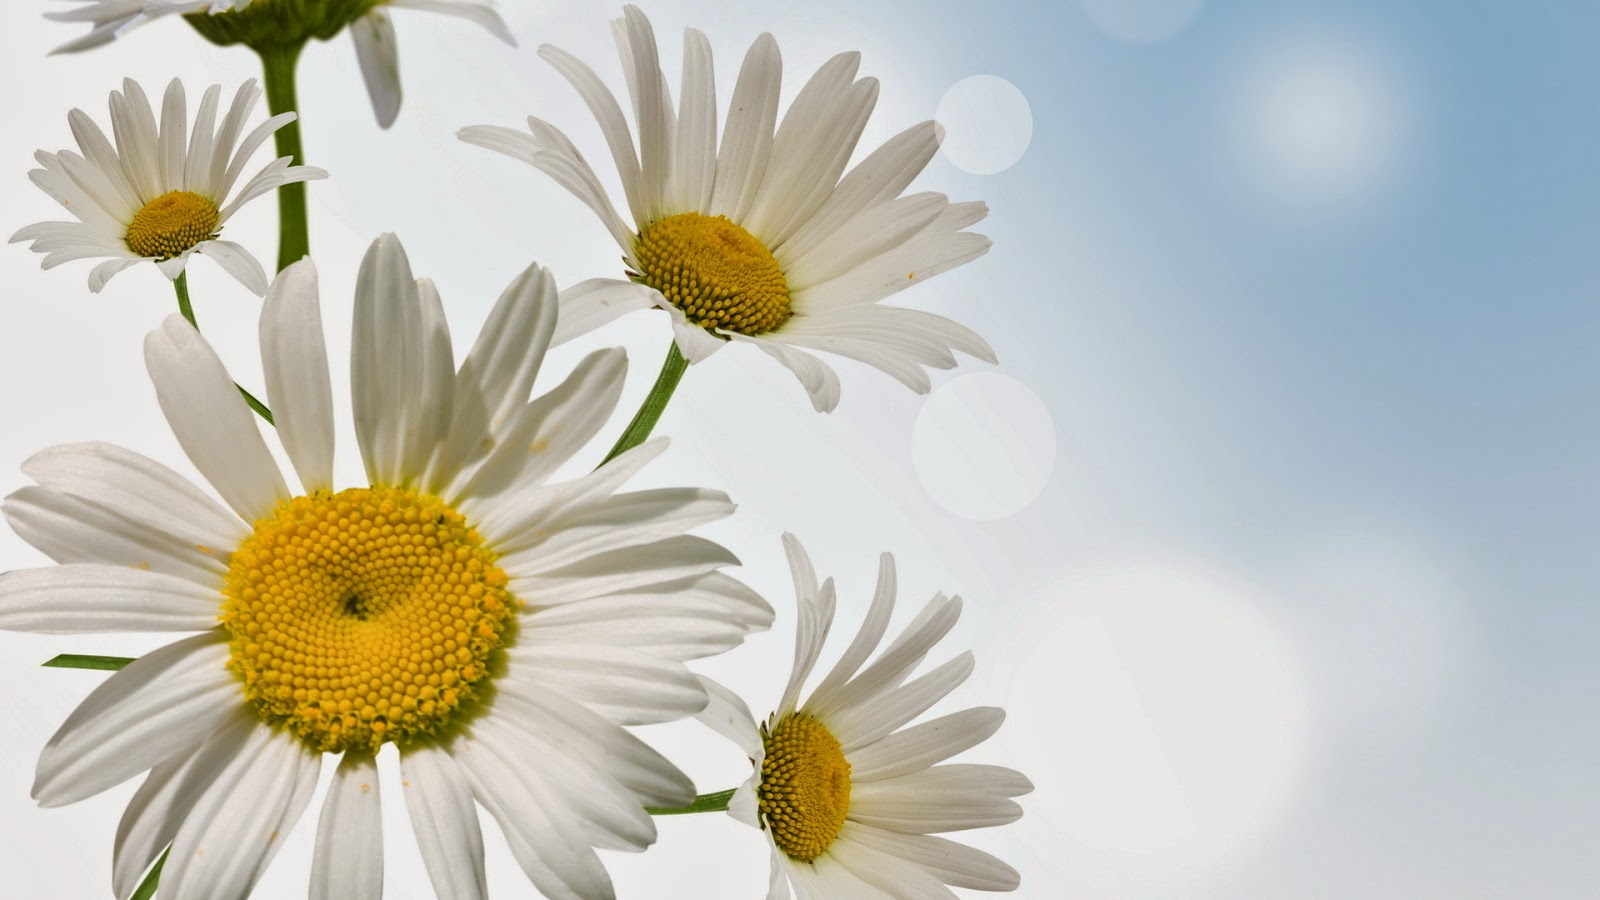 HD-Daisy-flower-facebook-cover-photo-album-gallery.jpg